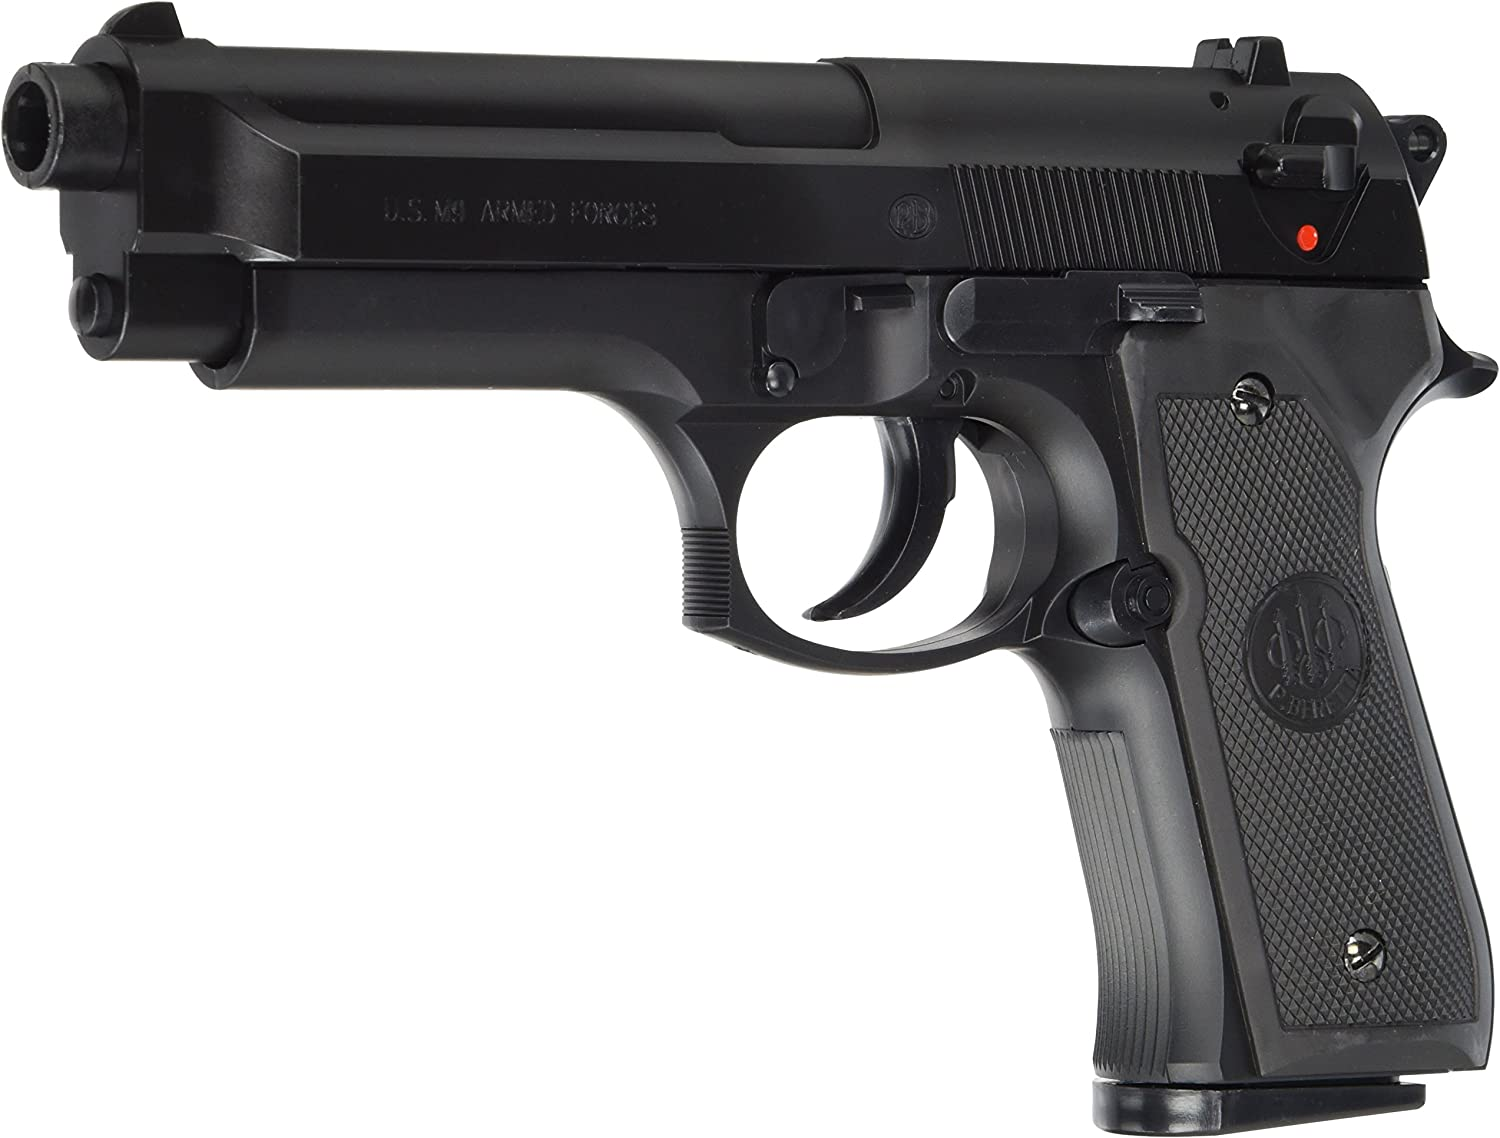 BERETTA M9 World Defender - Pistola Airsoft (<0,5 Julios), Color Negro